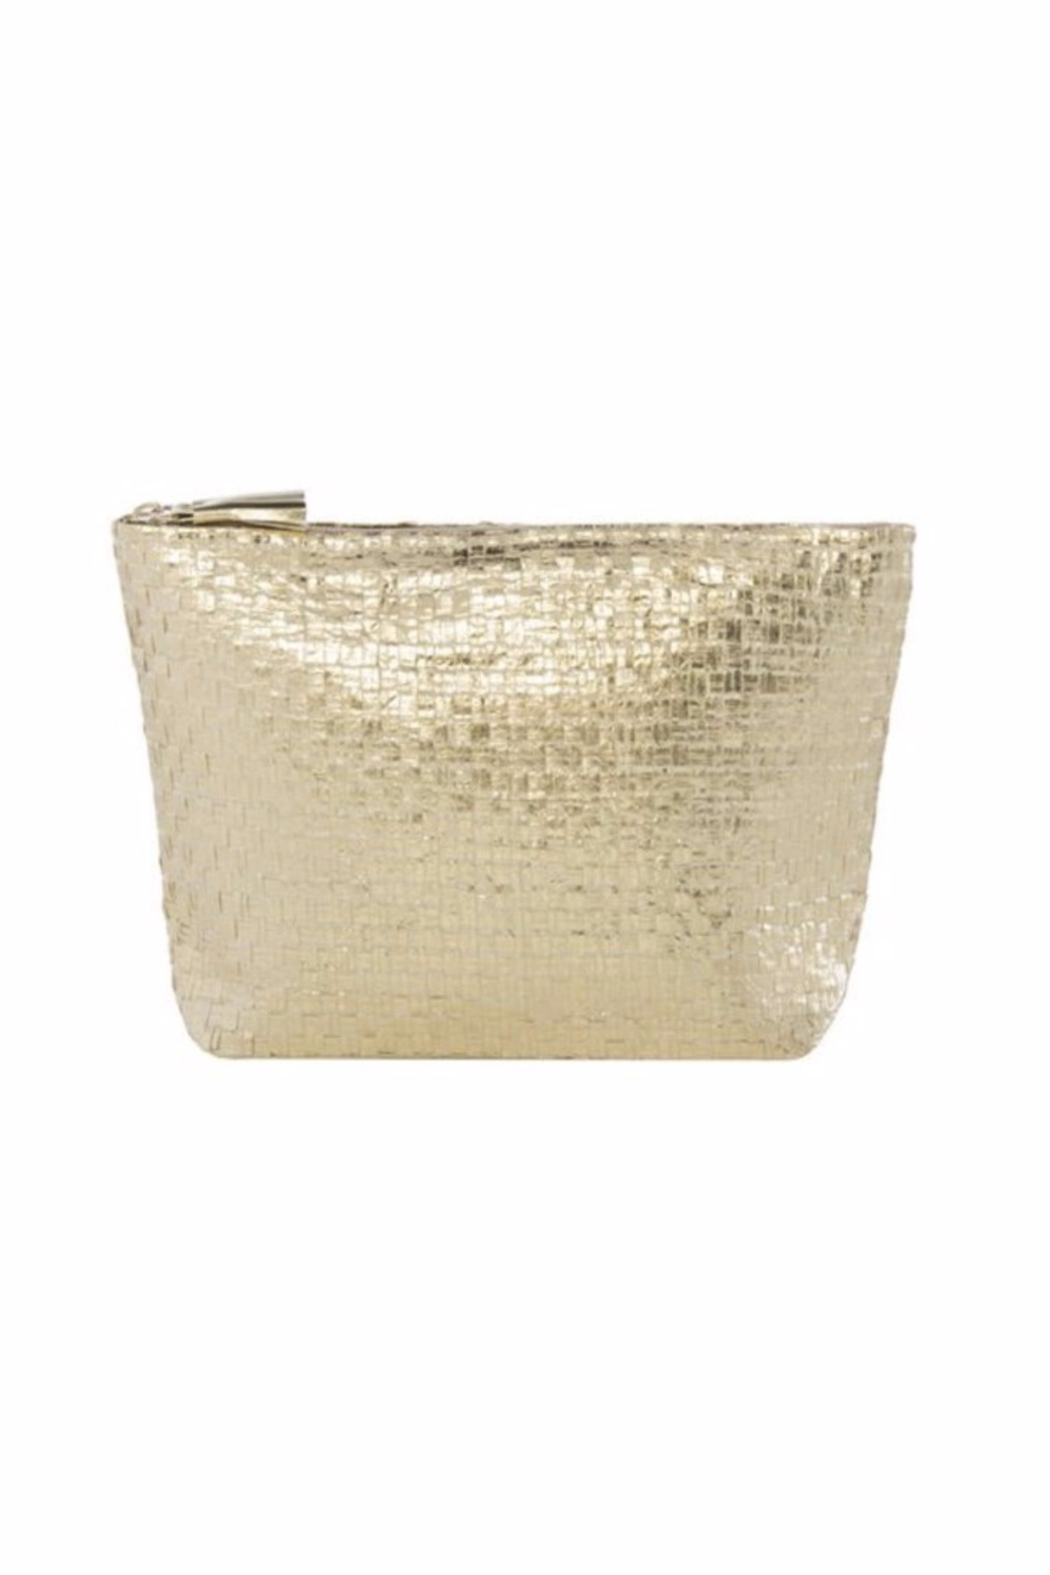 Allie & Chica Metallic Gold Pouch - Main Image